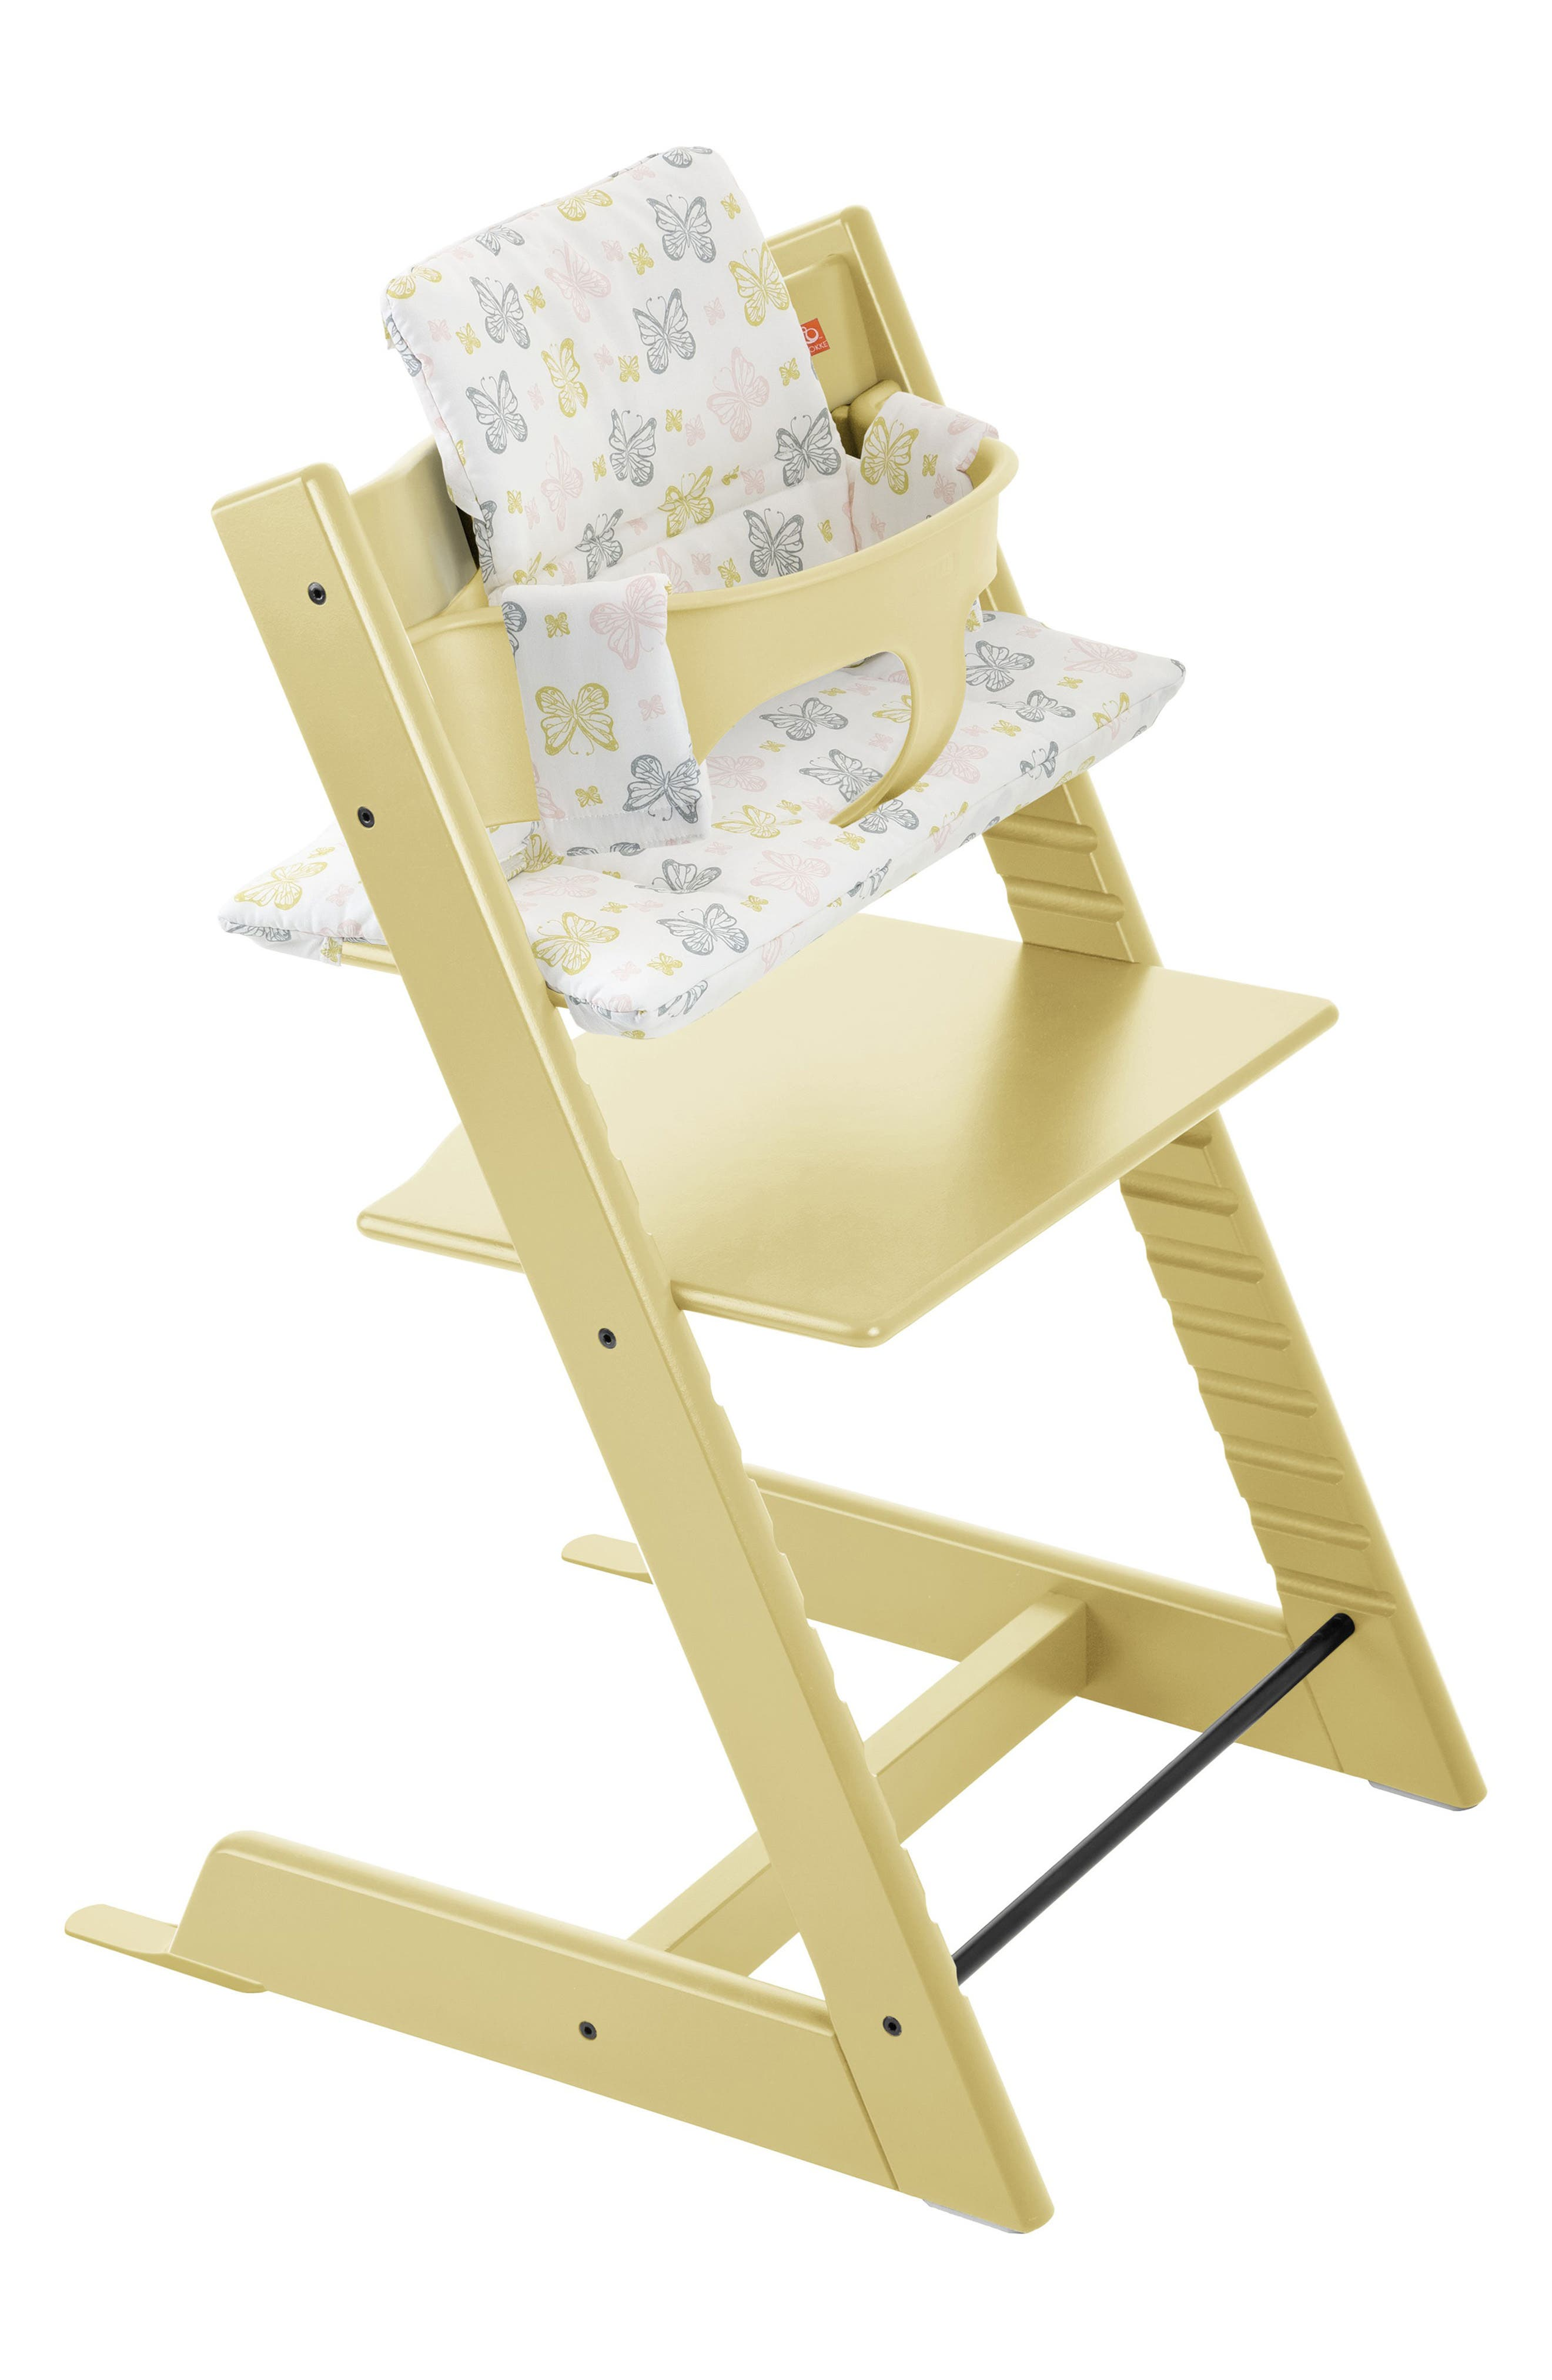 Tripp Trapp<sup>®</sup> High Chair, Baby Set, Cushion & Tray Set,                             Main thumbnail 1, color,                             703